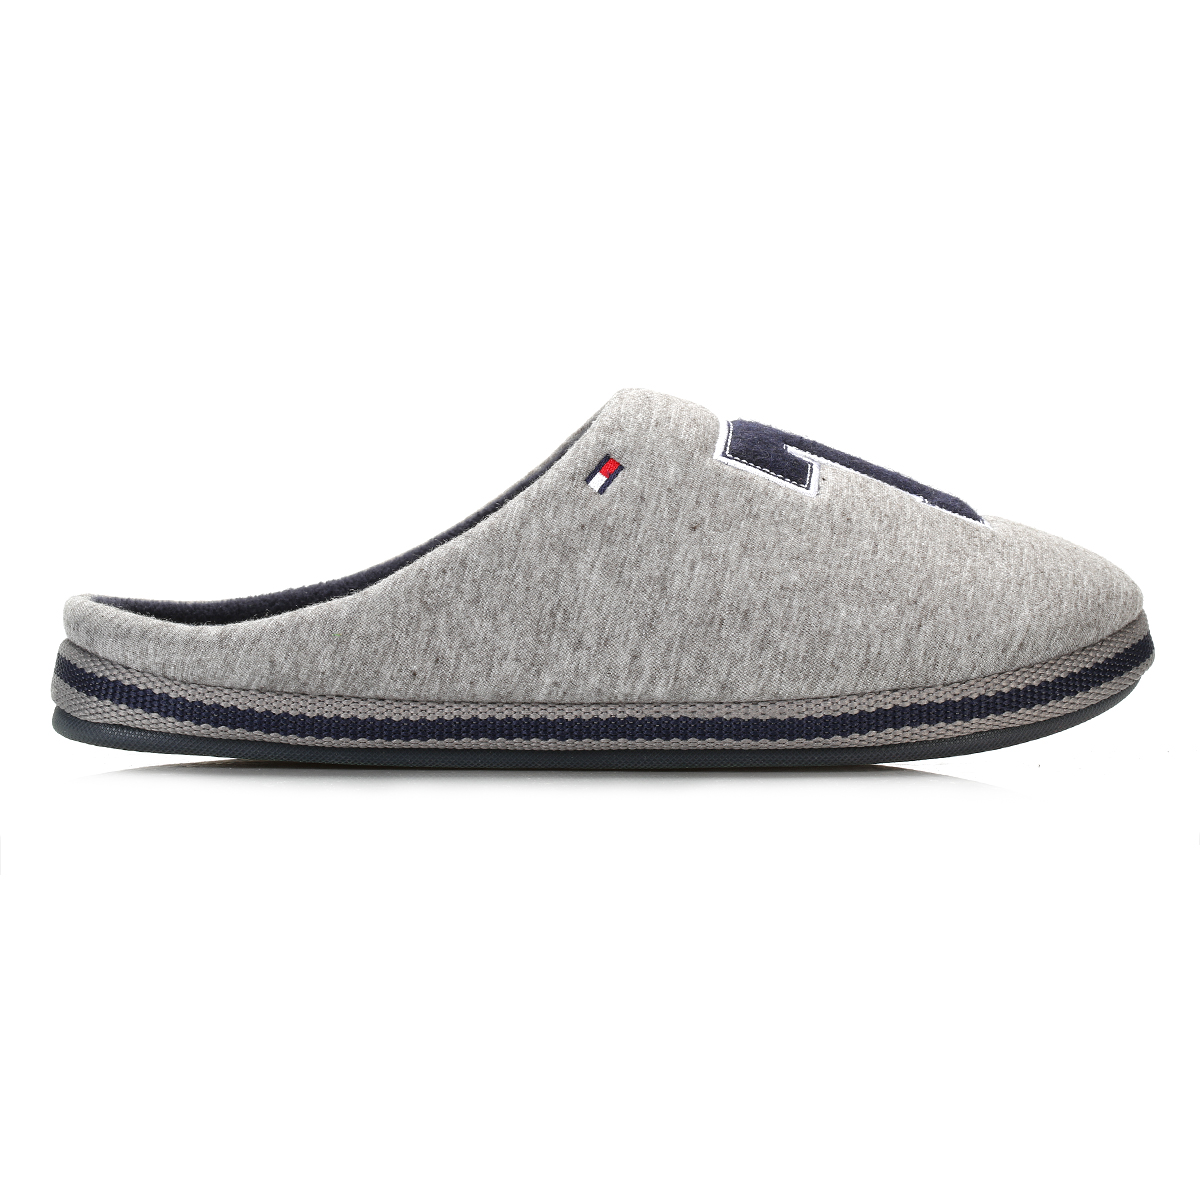 tommy hilfiger mens slippers grey textile slip on home. Black Bedroom Furniture Sets. Home Design Ideas